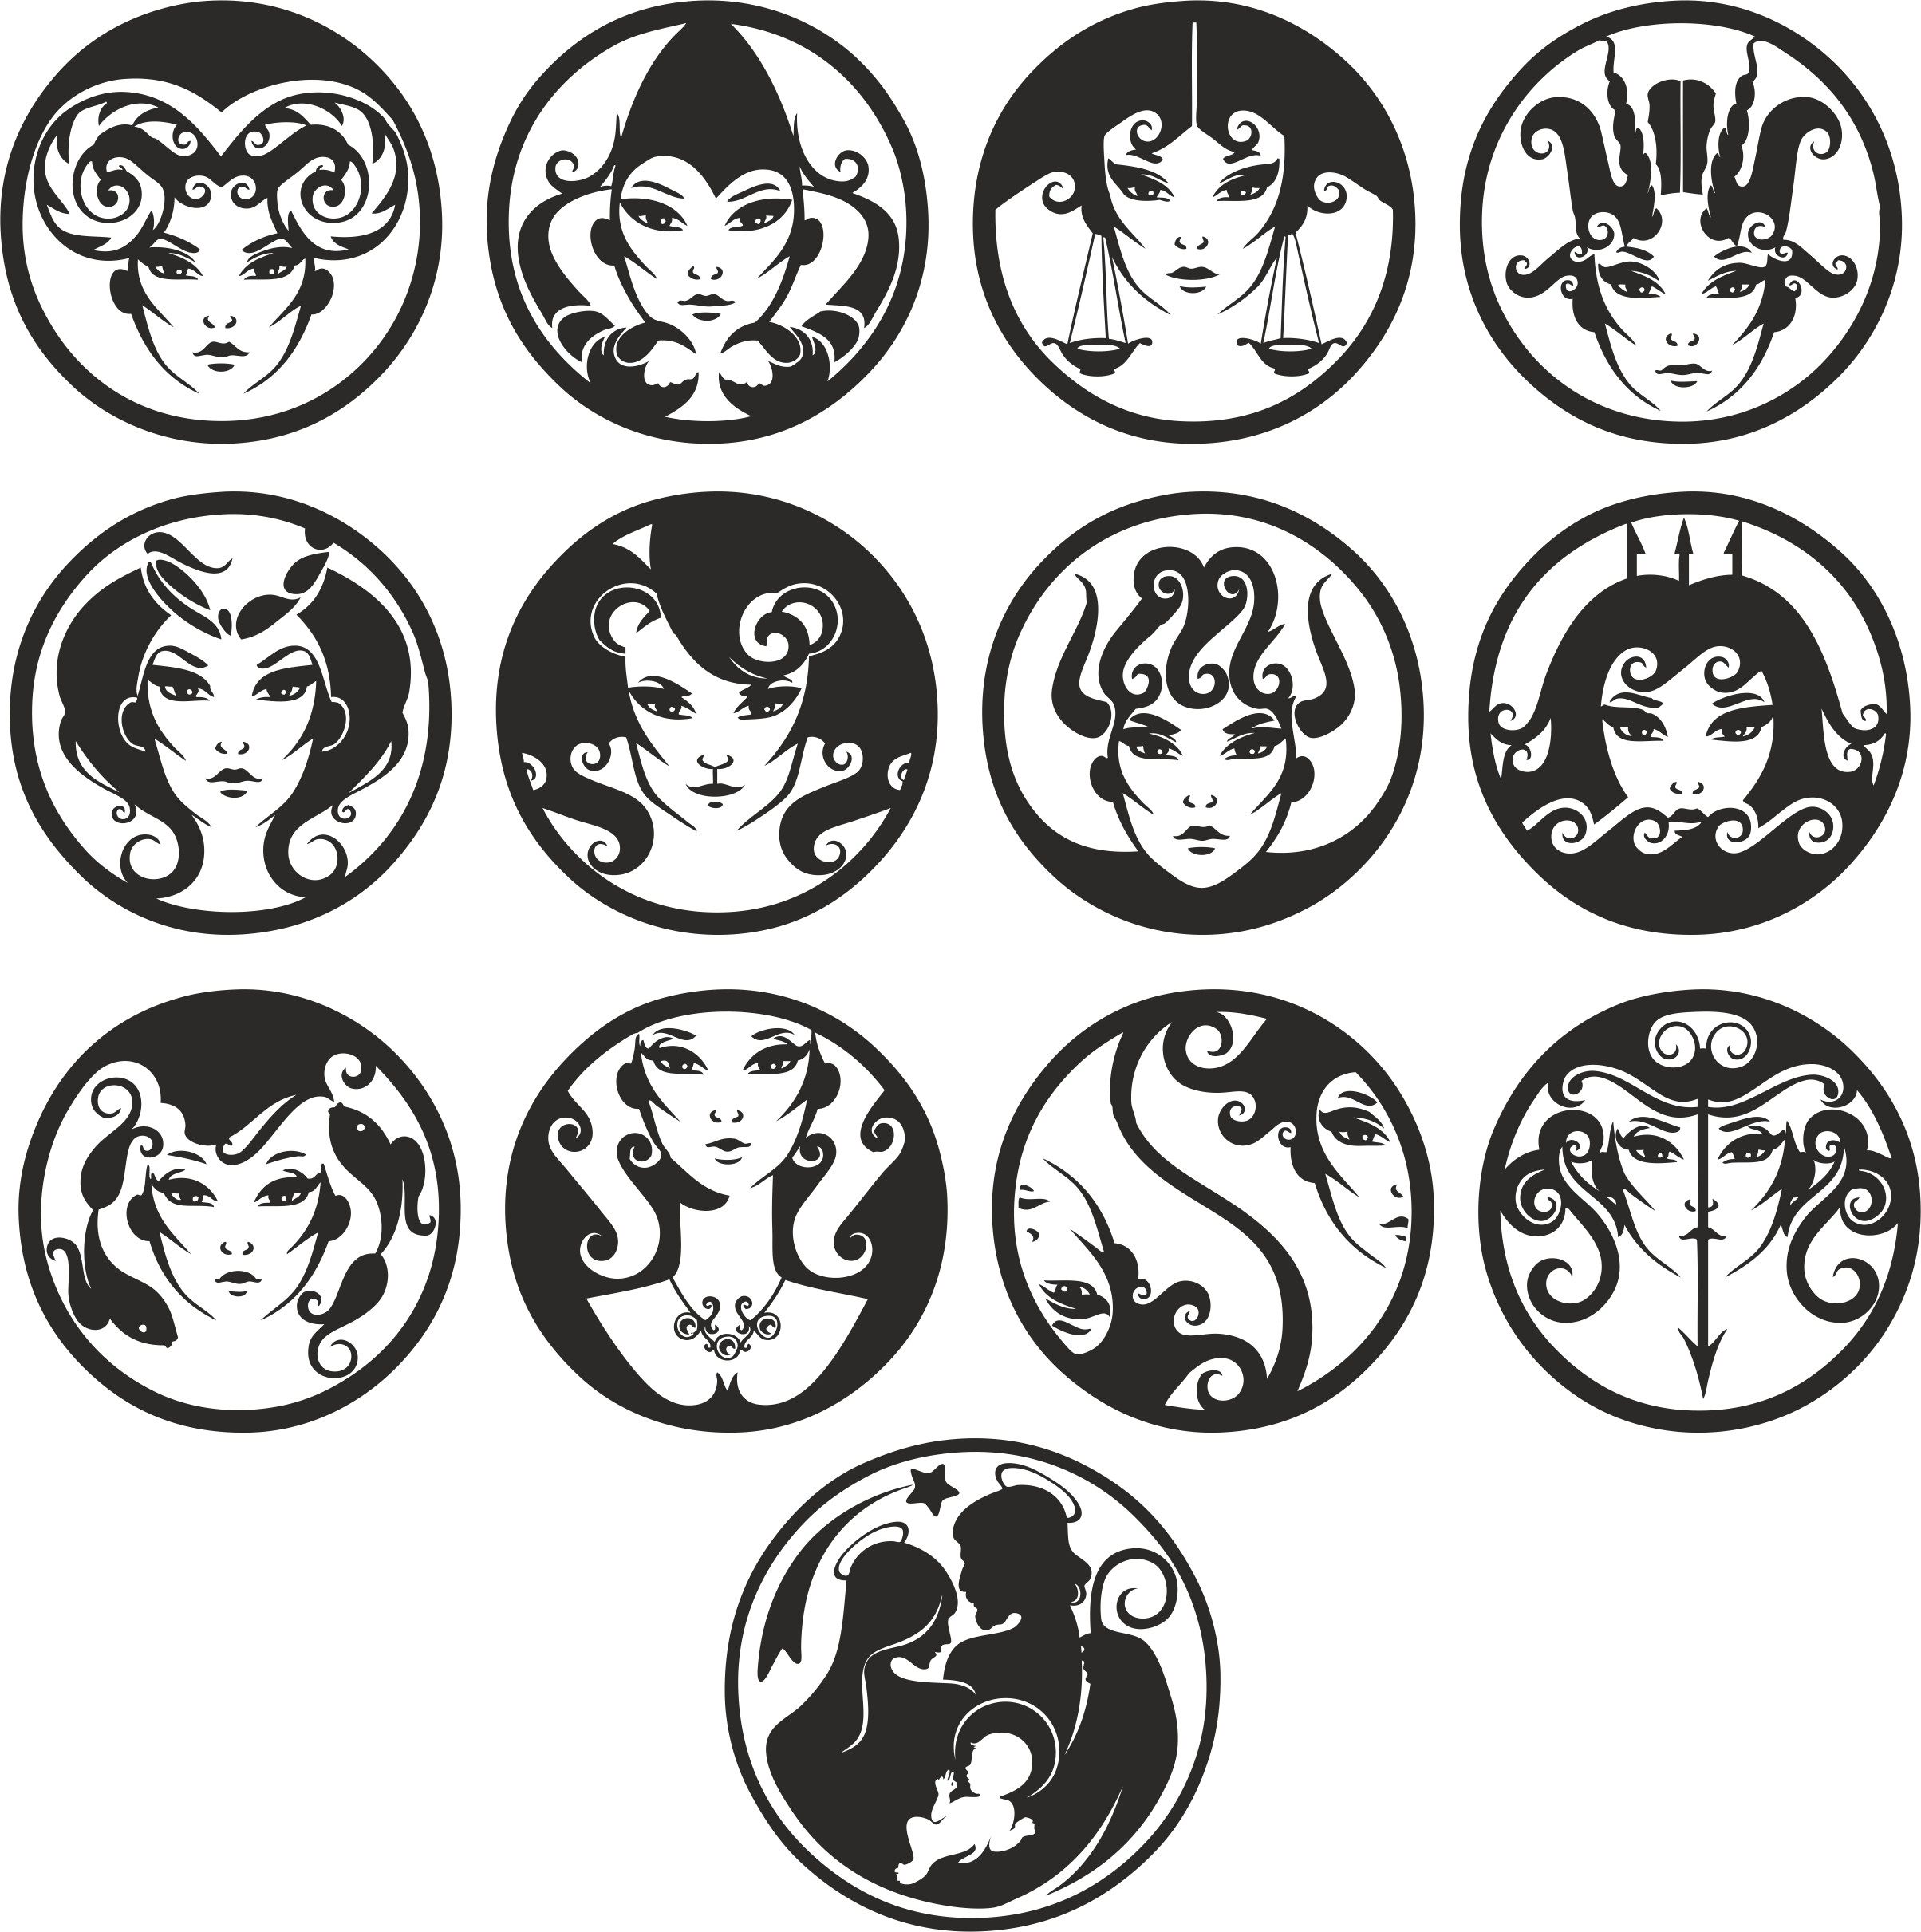 Zodiac Signs In The Form Of Female Faces Free DXF File